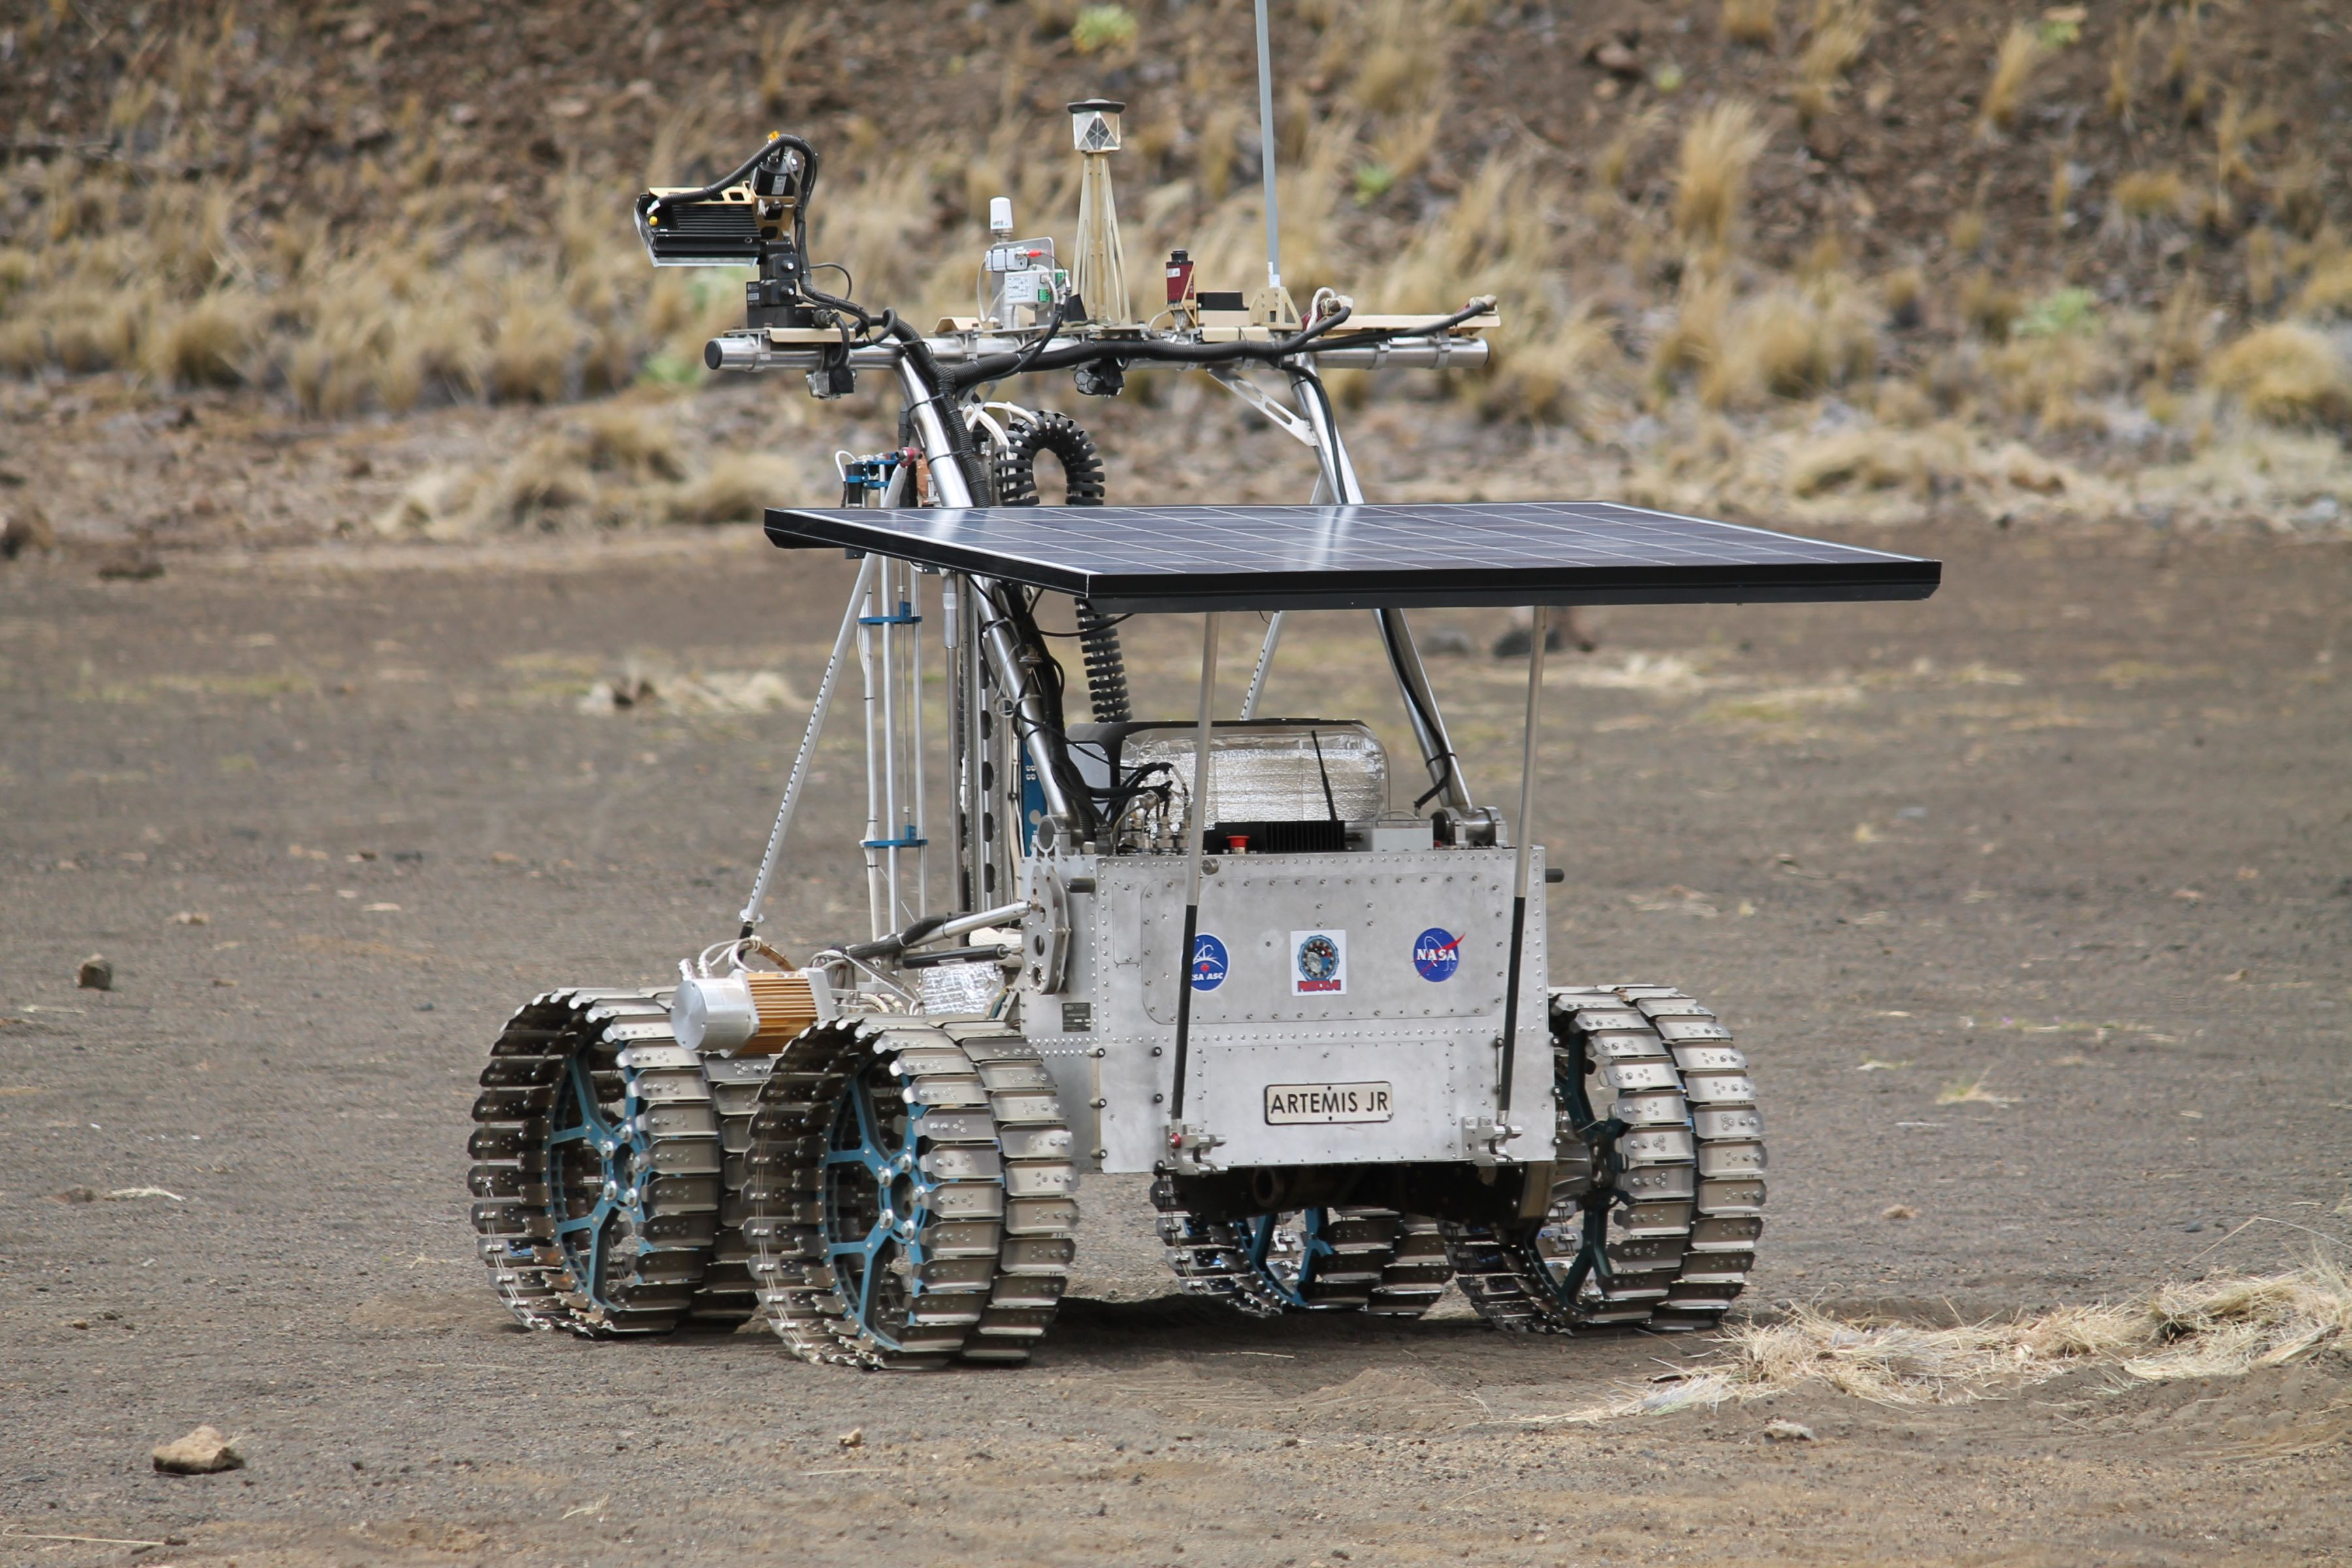 ARTEMIS JR equipped with metal wheels and a NASA payload on test in Hawaii.